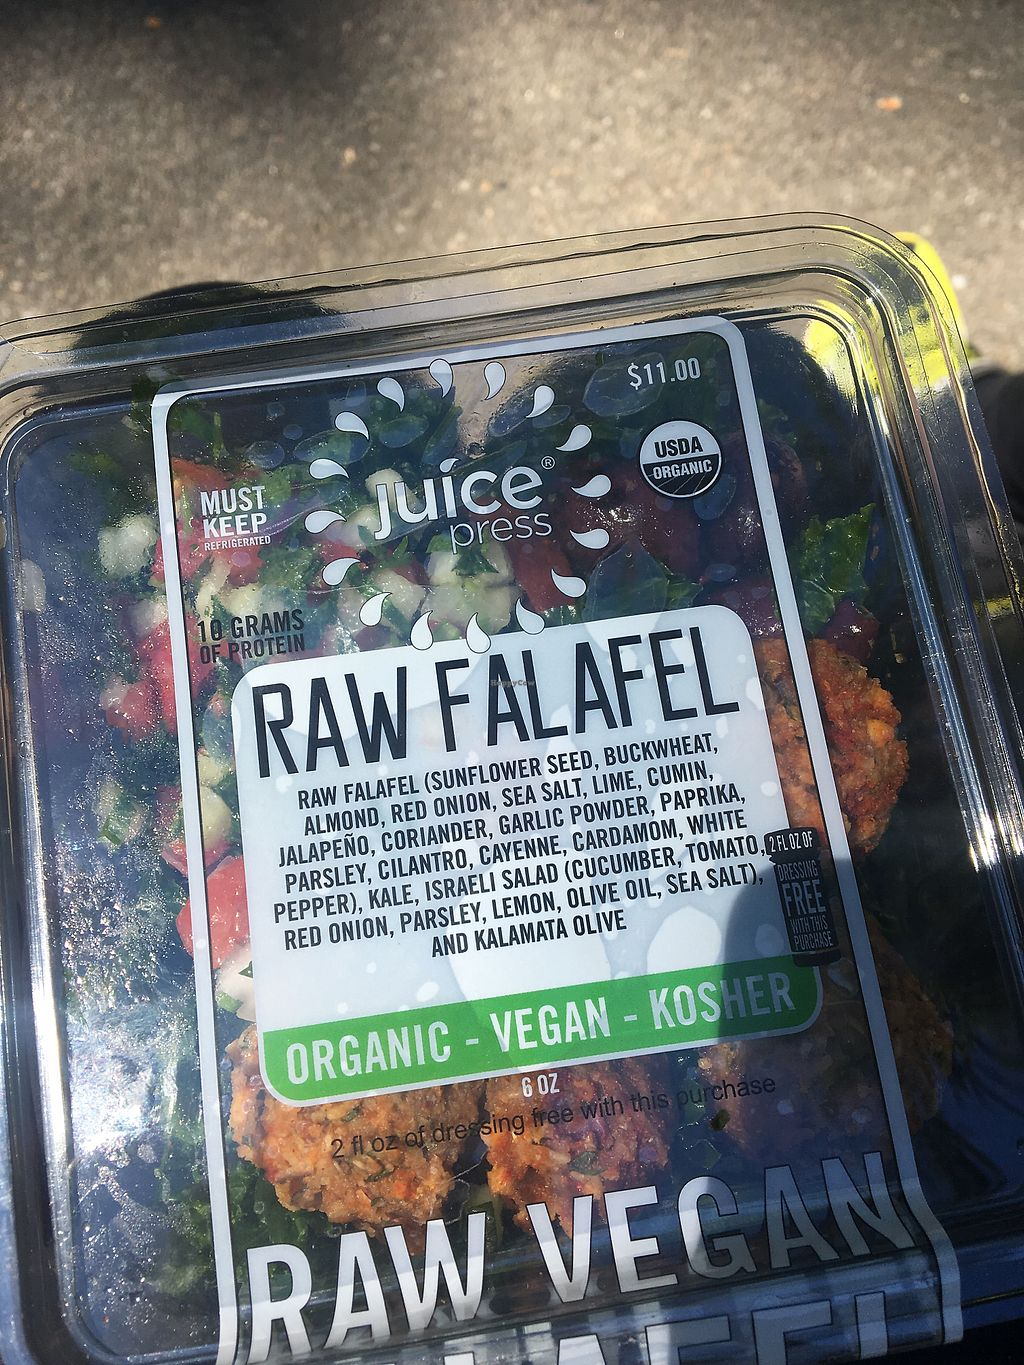 """Photo of Juice Press - Midtown East  by <a href=""""/members/profile/CathrineGaraguso"""">CathrineGaraguso</a> <br/>Raw falafel salad <br/> August 3, 2017  - <a href='/contact/abuse/image/77149/288318'>Report</a>"""